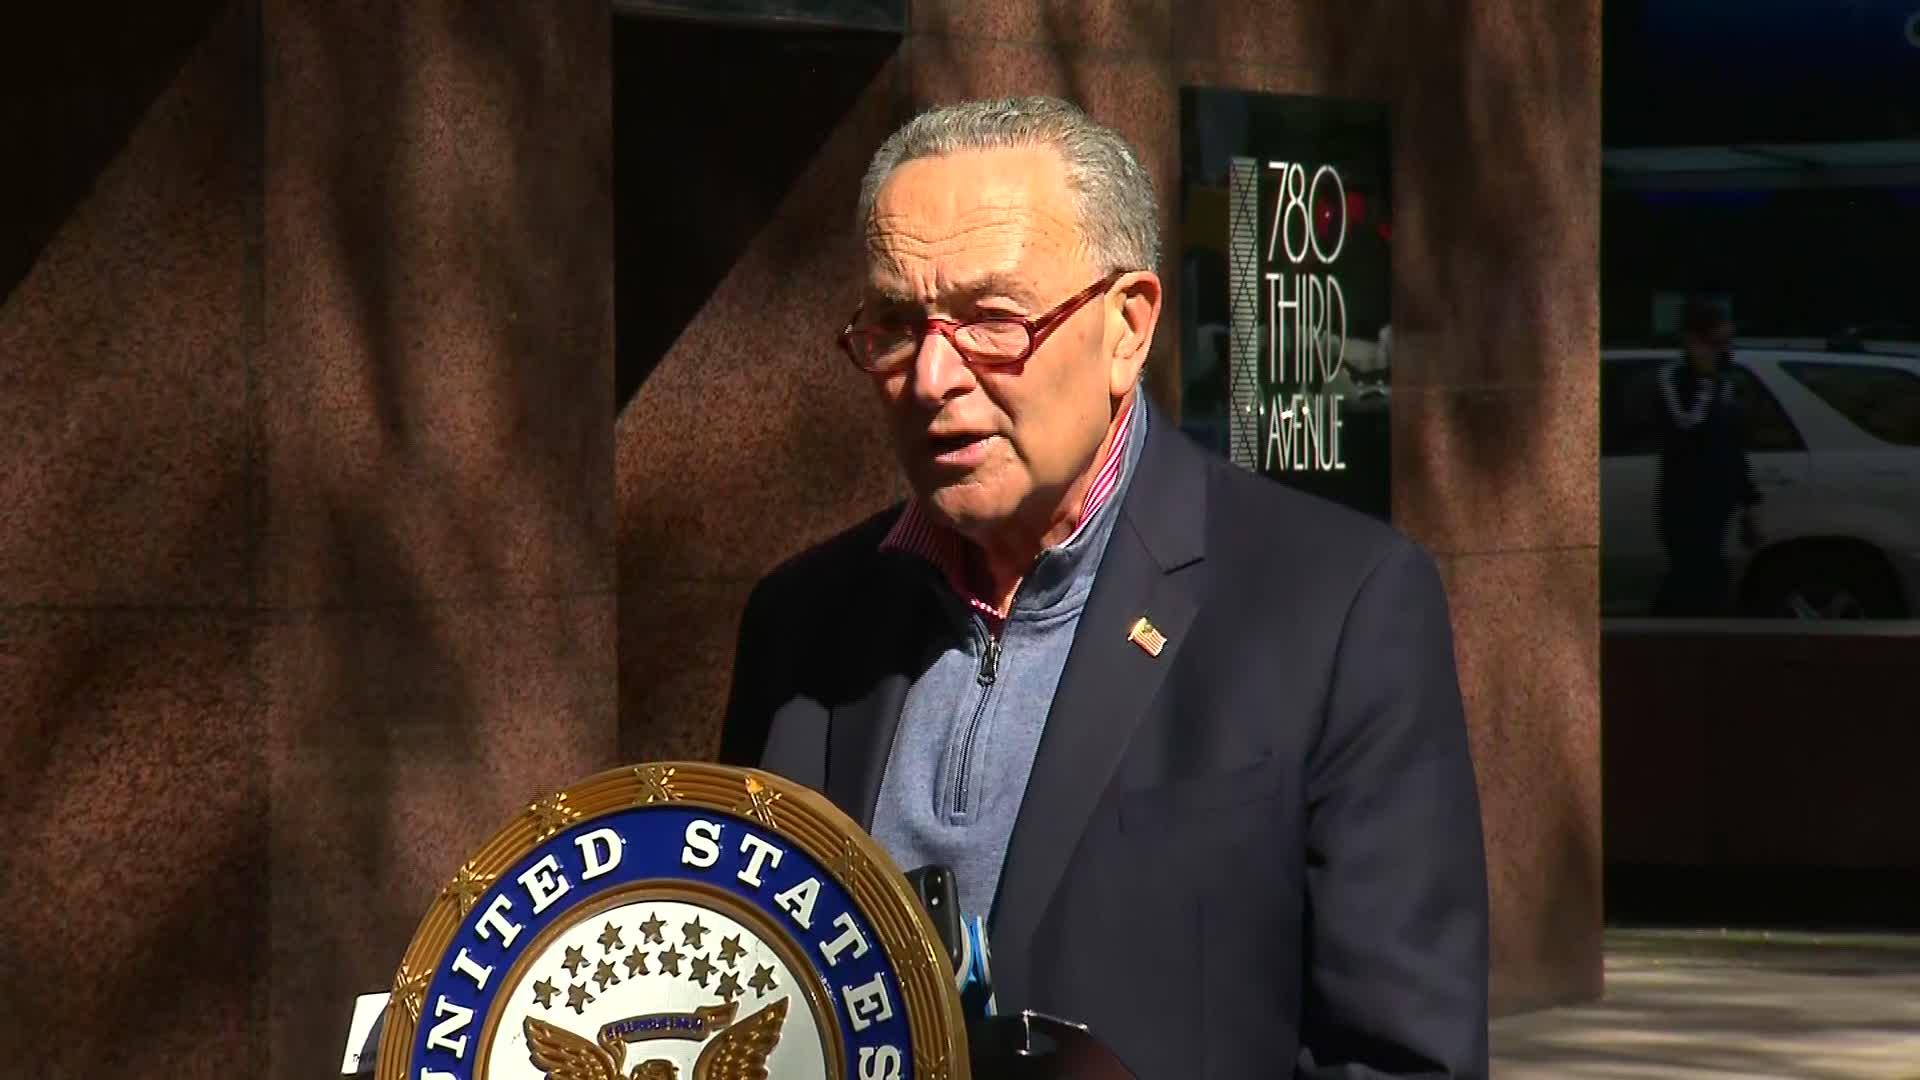 Senate Minority Leader Chuck Schumer speaks during a press conference in New York on October 4.